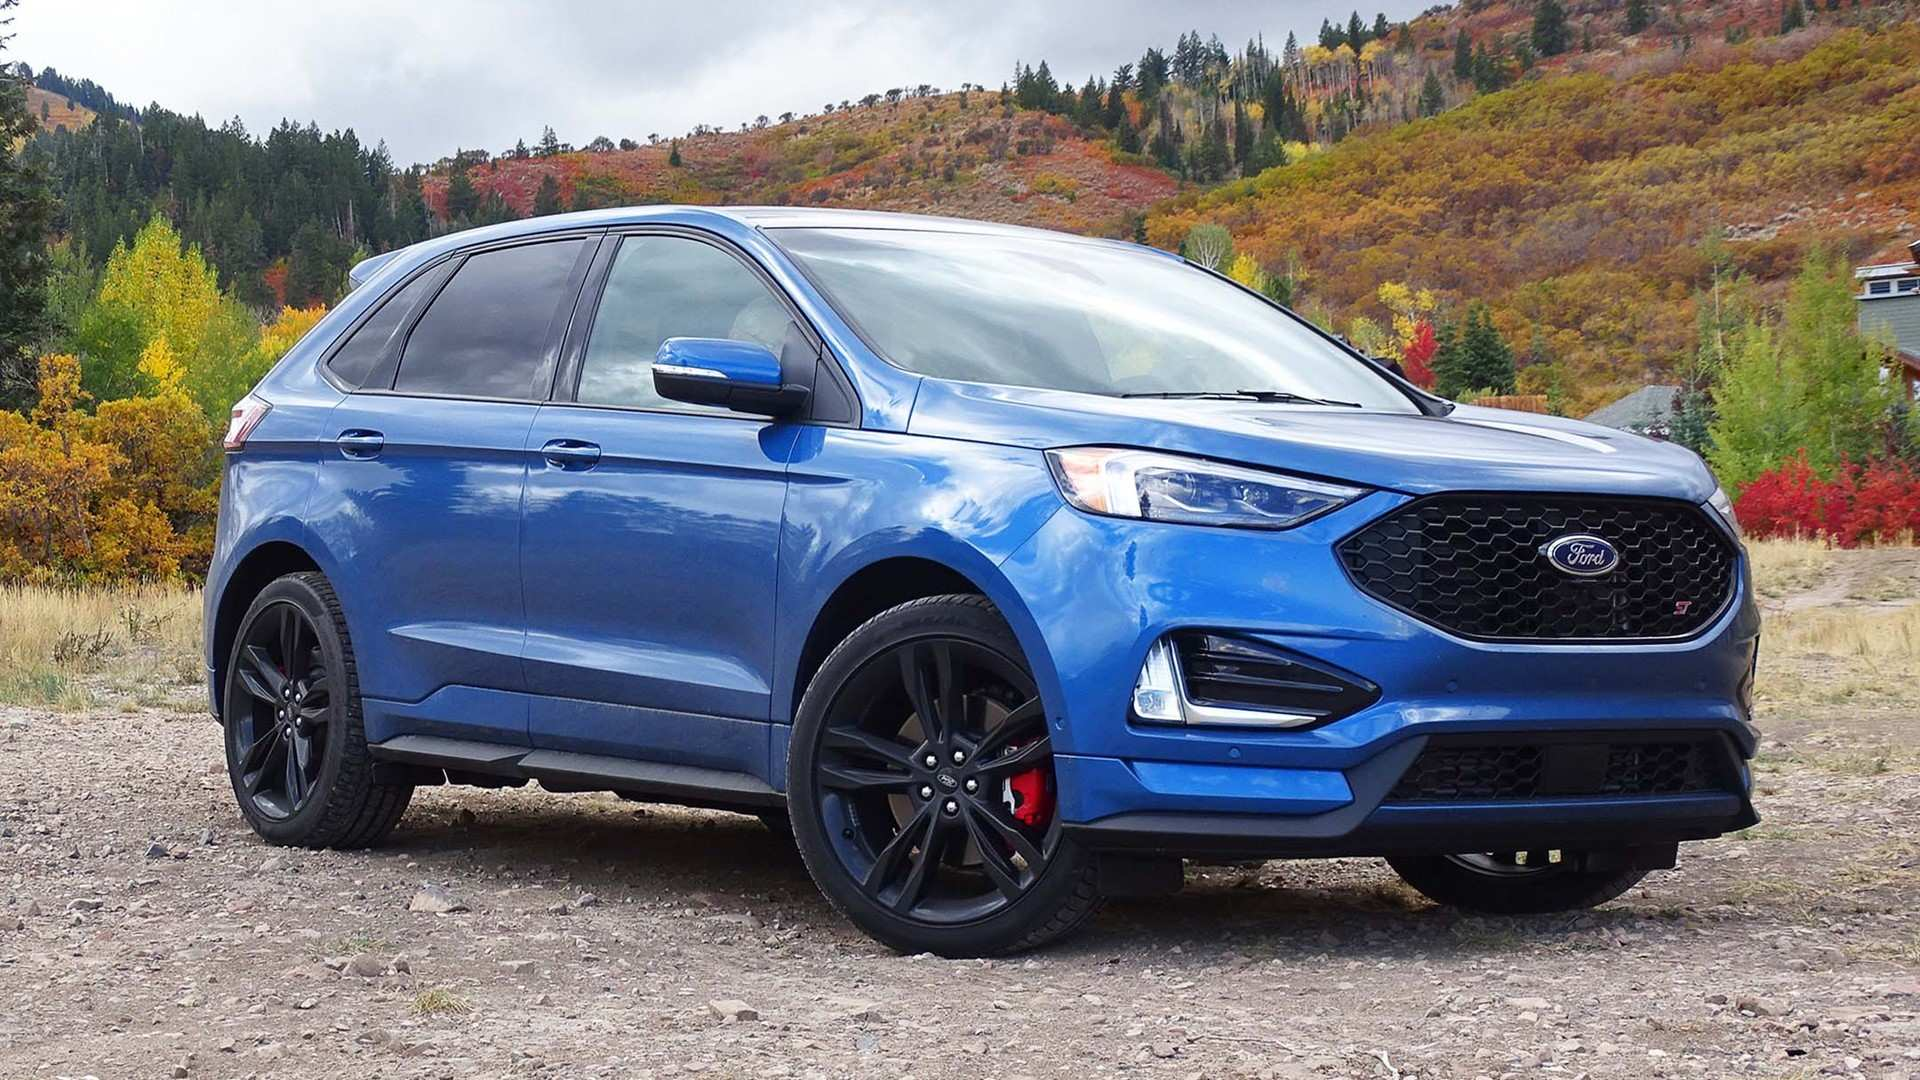 71 All New 2019 Ford Atlas Engine Price And Review